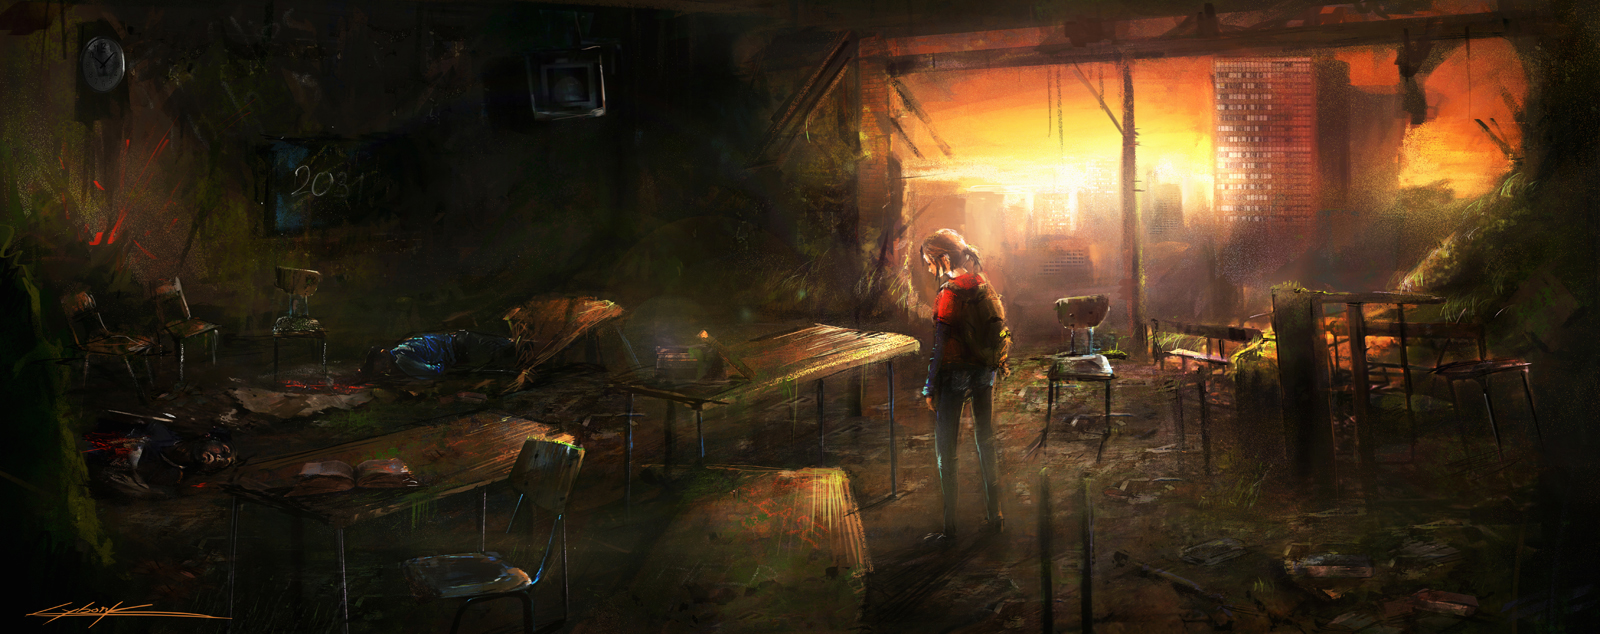 The last of us: Ellie in the school by VitoSs